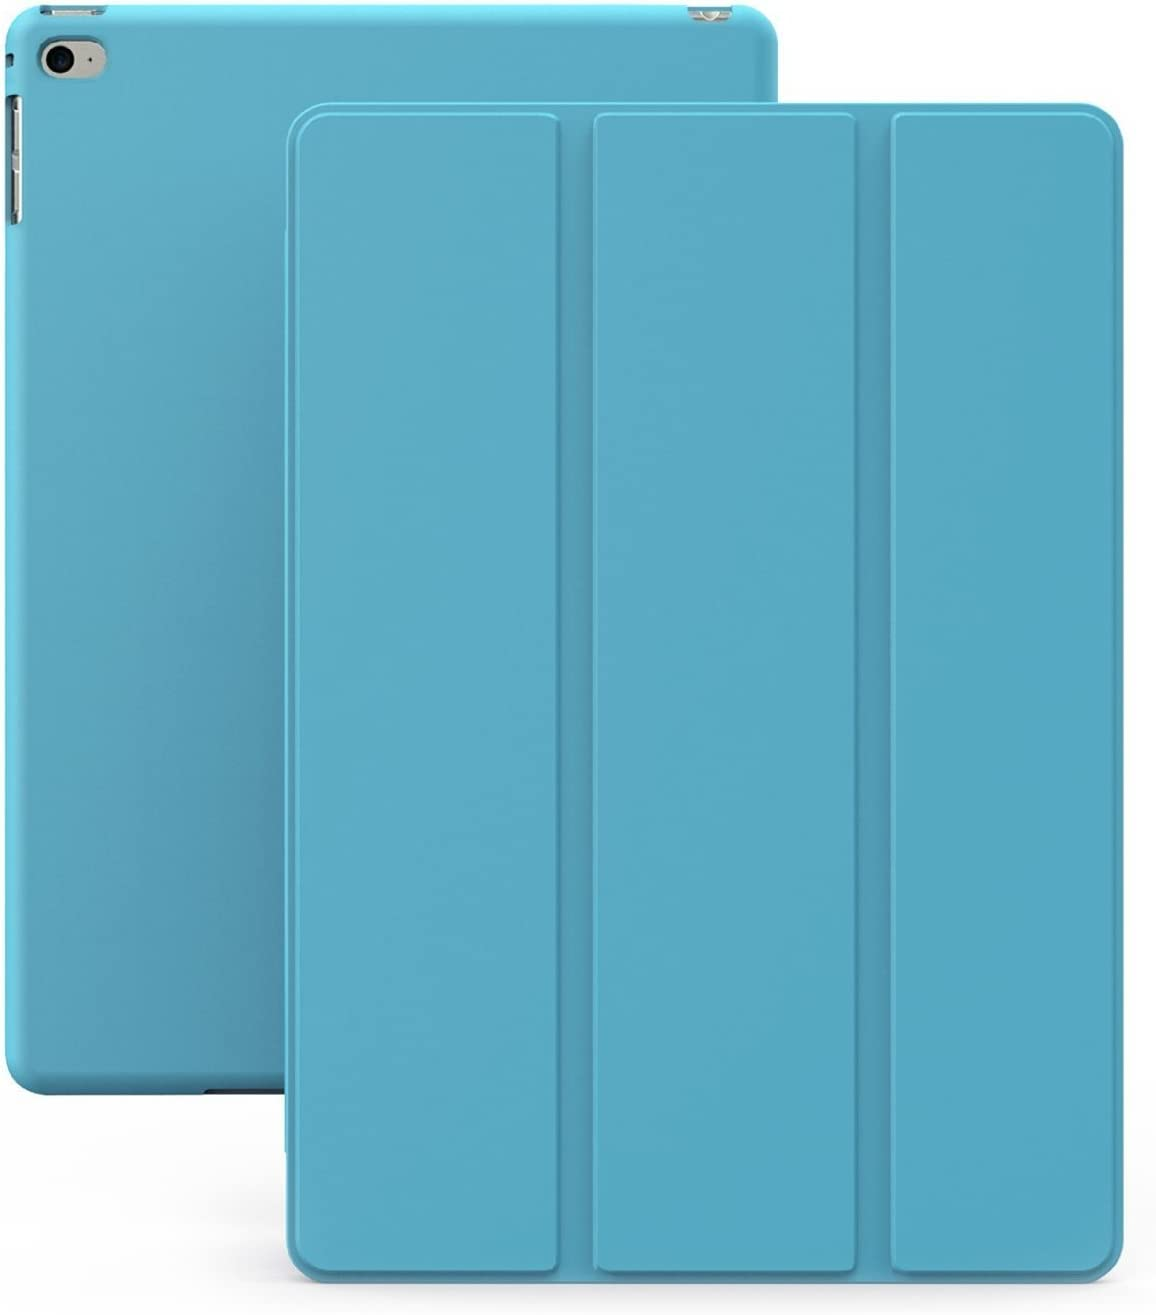 KHOMO iPad Air 2 Case - Dual Series - Ultra Slim Cover with Auto Sleep Wake Feature for Apple iPad Air 2nd Generation Tablet, Blue (ip-air-2-blue)